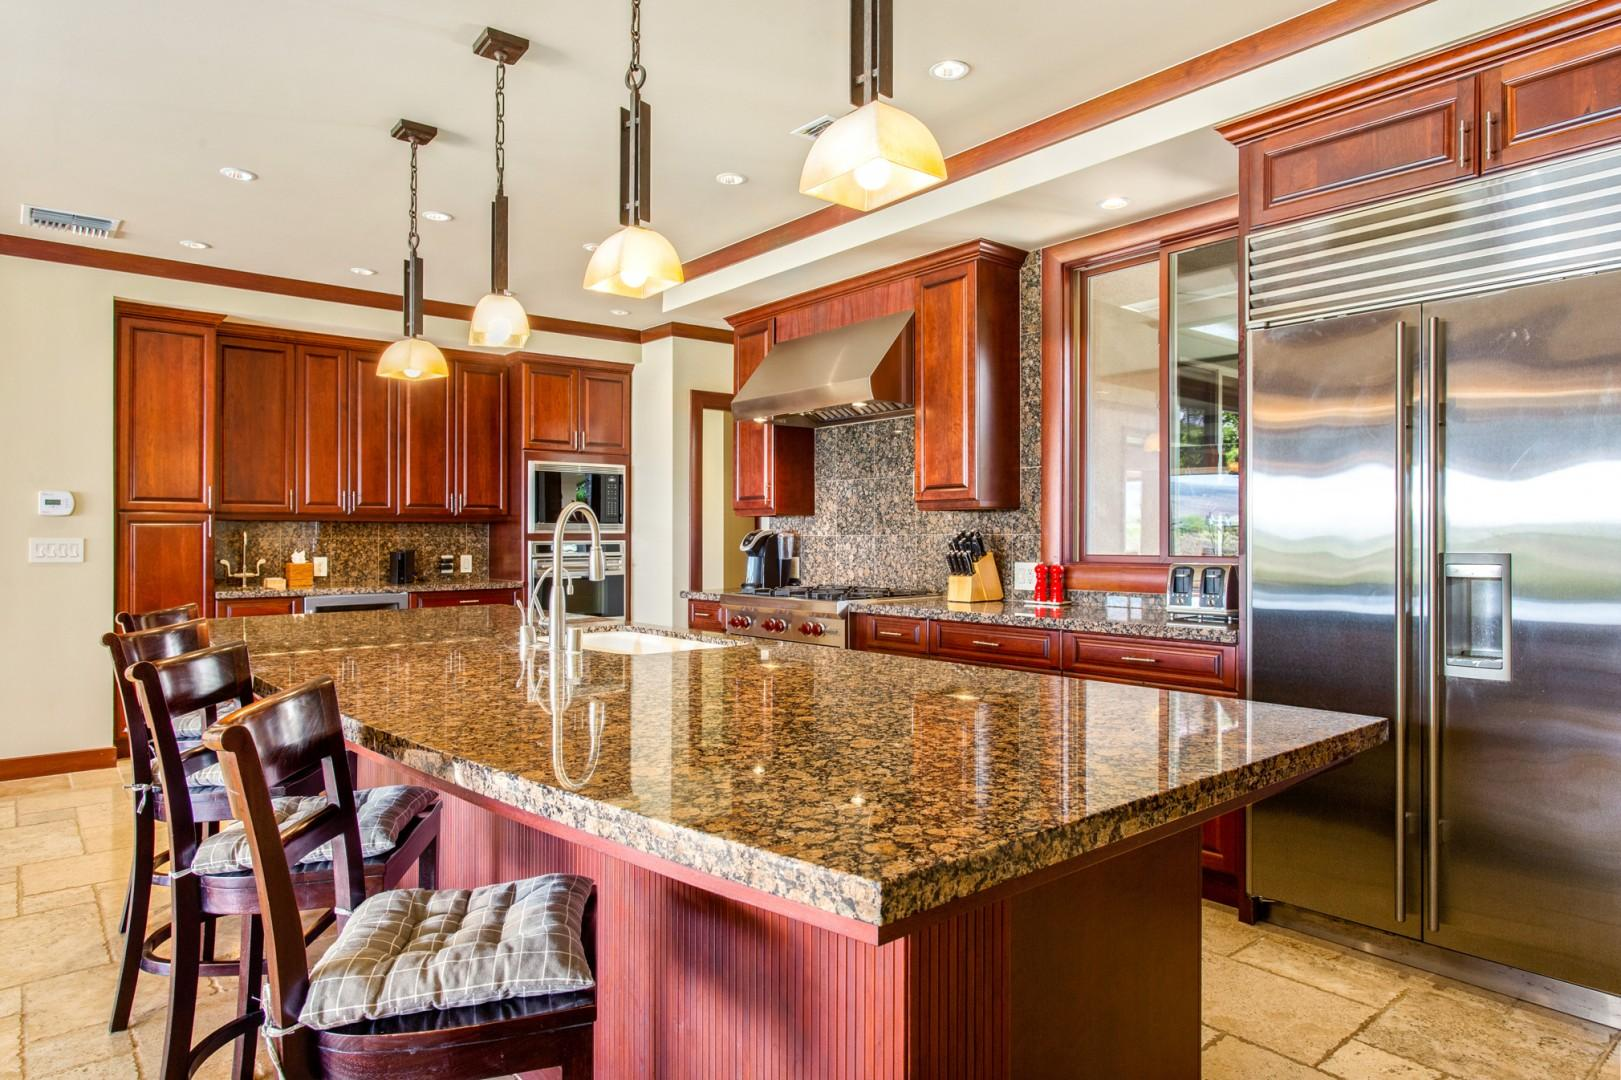 Alternate view of kitchen showcasing spacious layout, bar seating and chic recessed lighting.